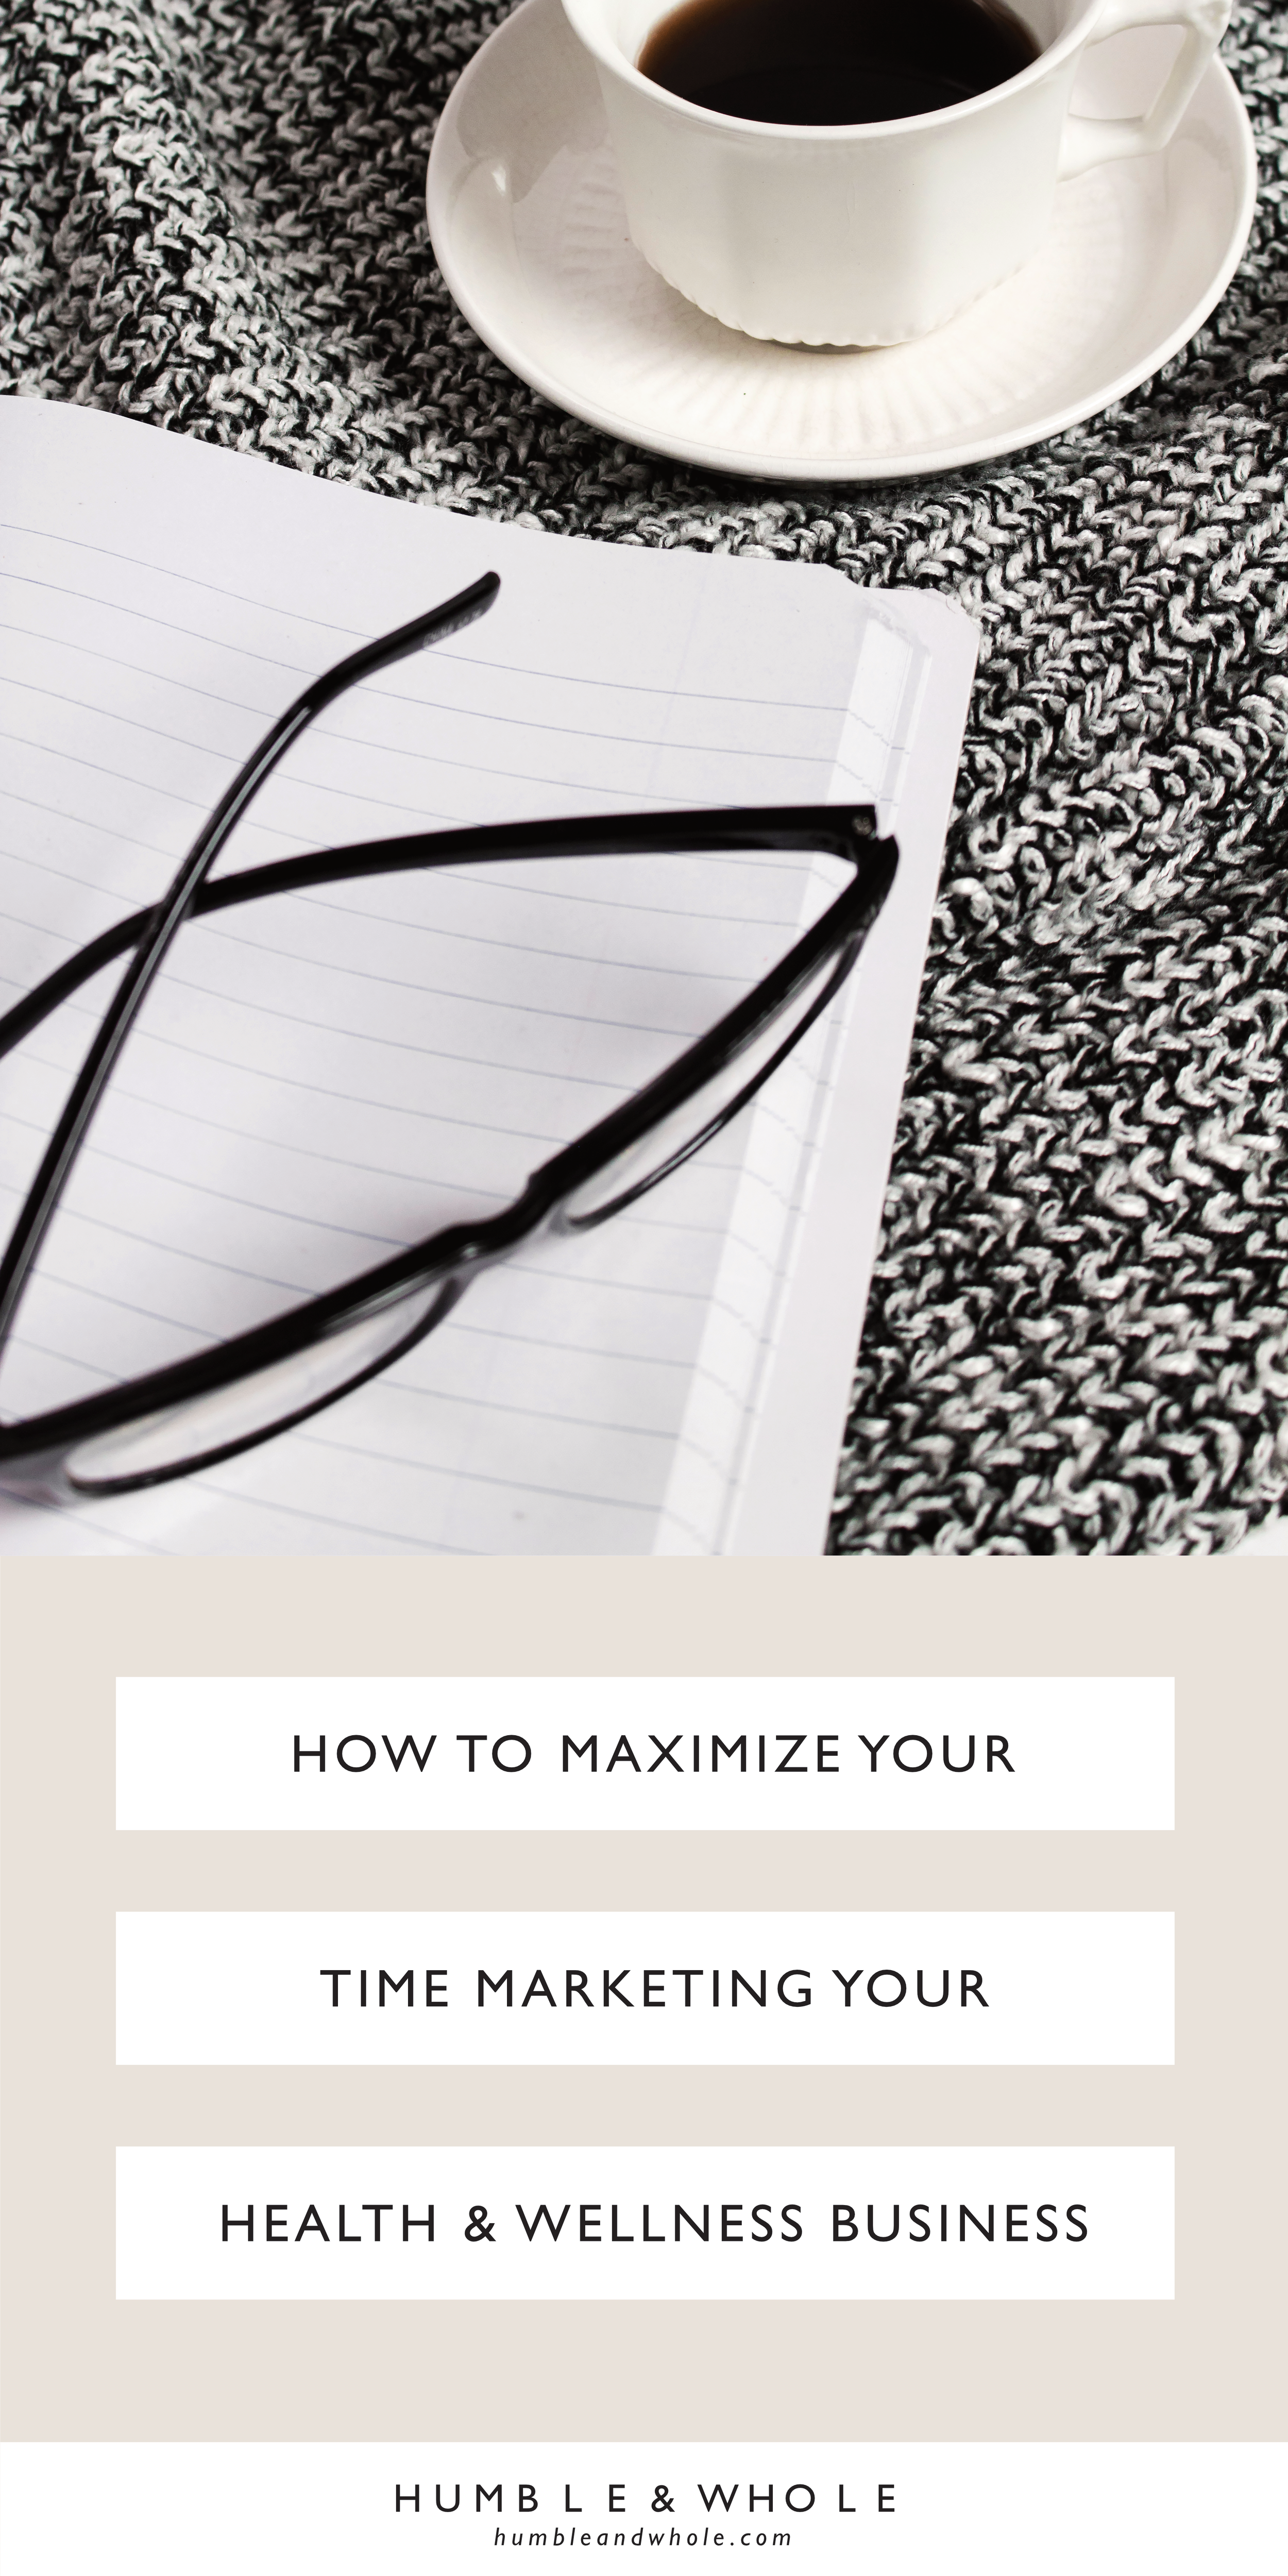 Wondering how to save time marketing your health and wellness business? No worries! We're revealing 6 ways to maximize your time so that you can actually yield an ROI.